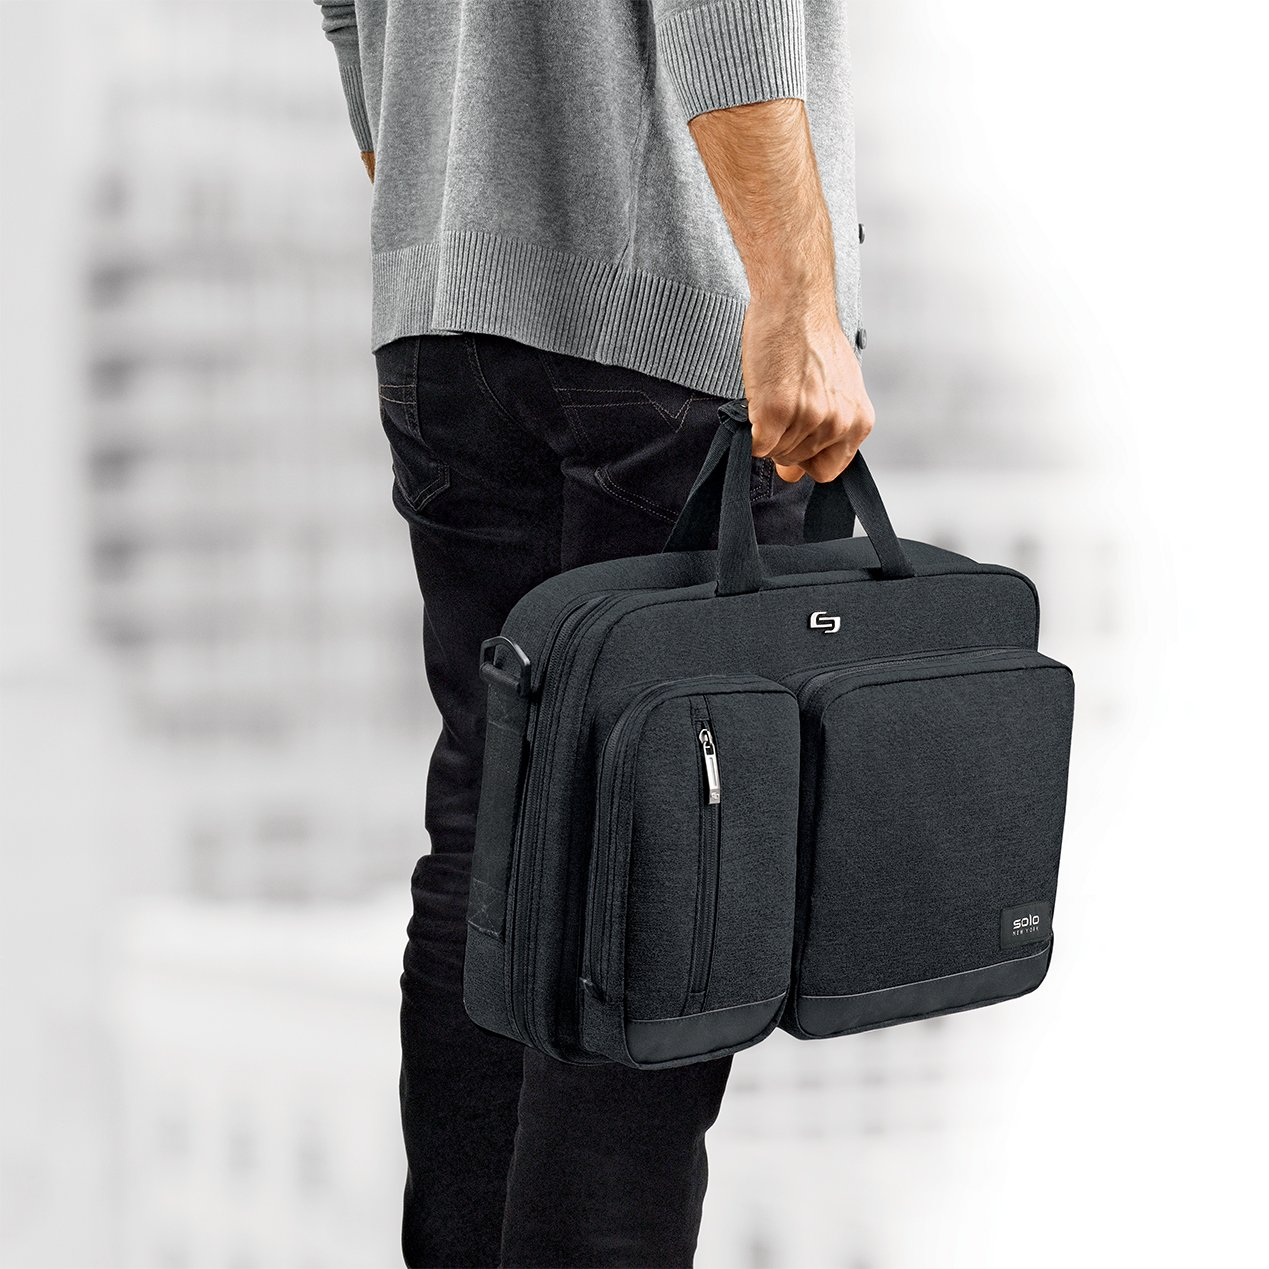 Solo Duane 15.6 Inch Laptop Hybrid Briefcase, Converts to Backpack, Slate, Amazon Exclusive by SOLO (Image #6)